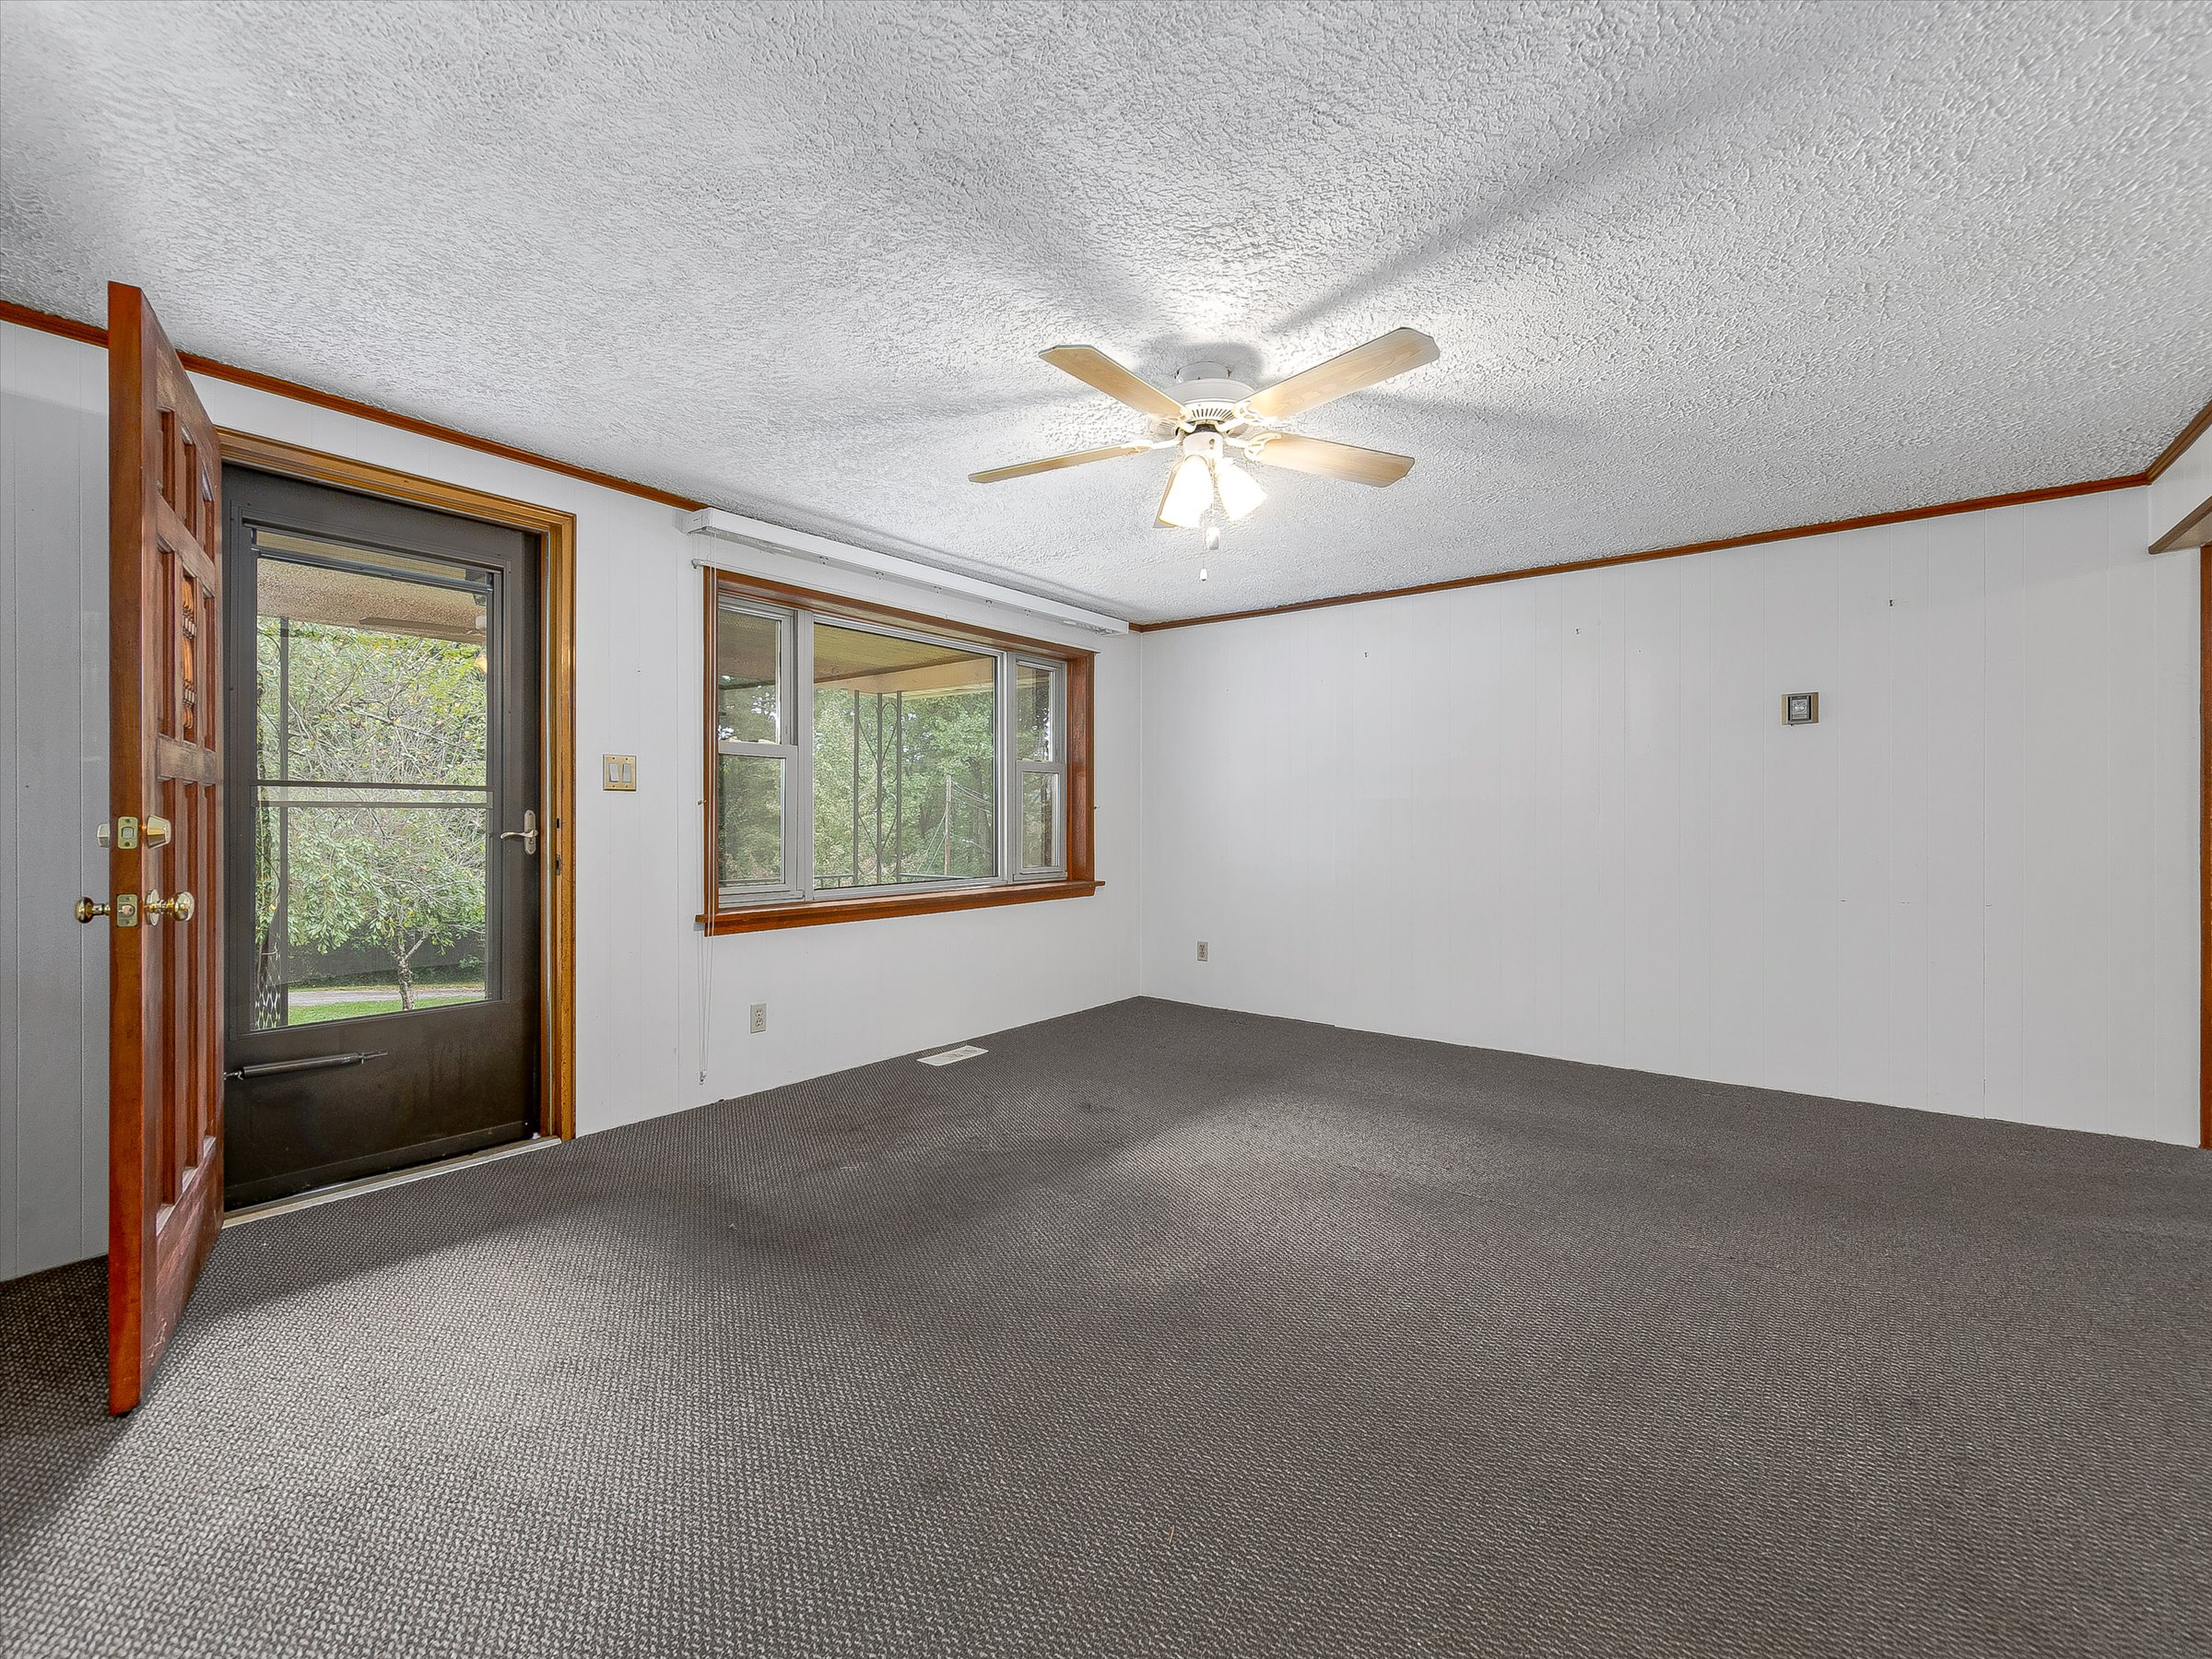 Charming House for Sale in Swannanoa on Large Private Lot